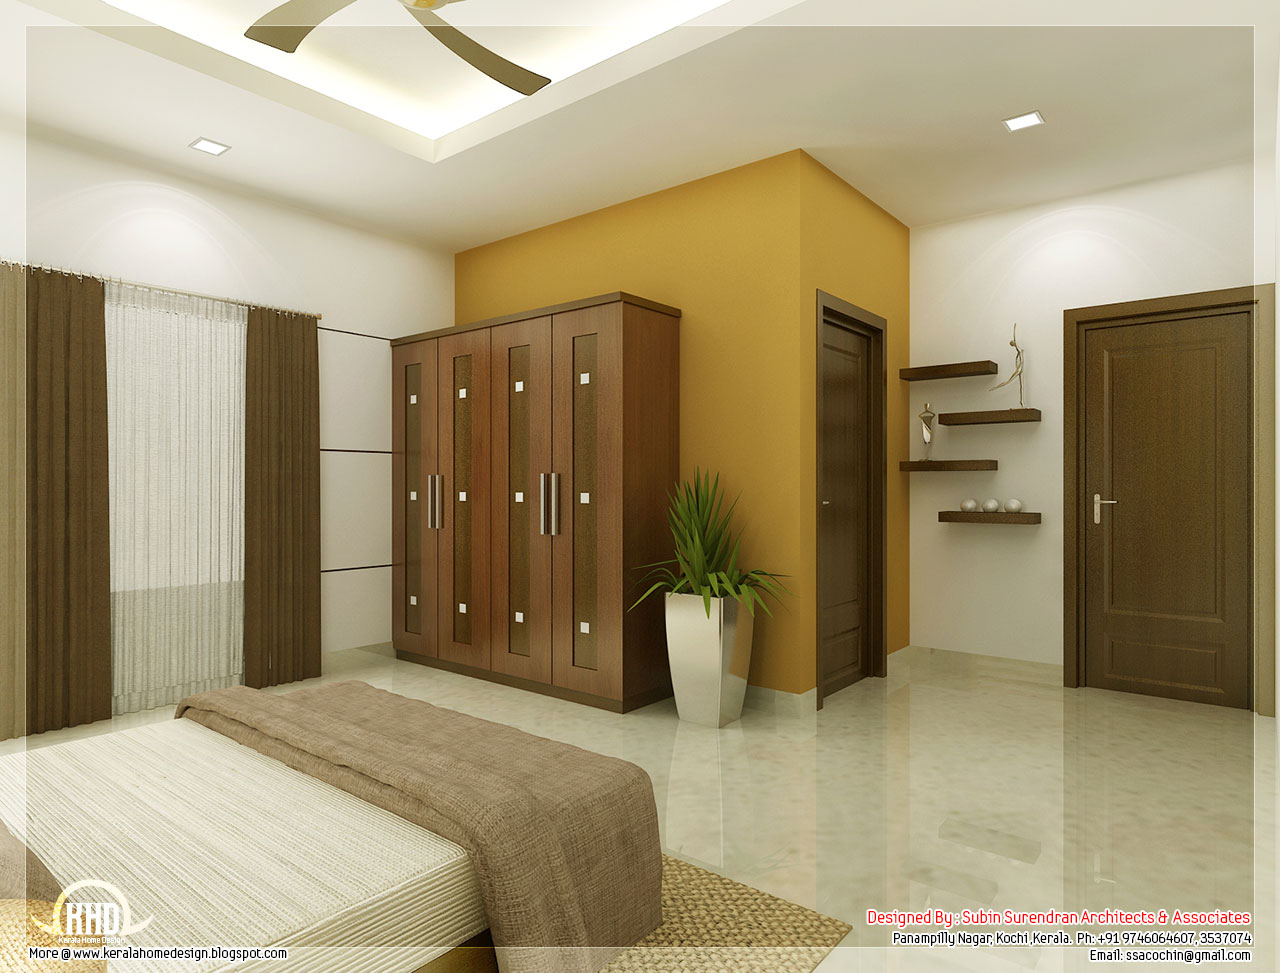 Beautiful bedroom interior designs kerala house design for Interior design images bedroom